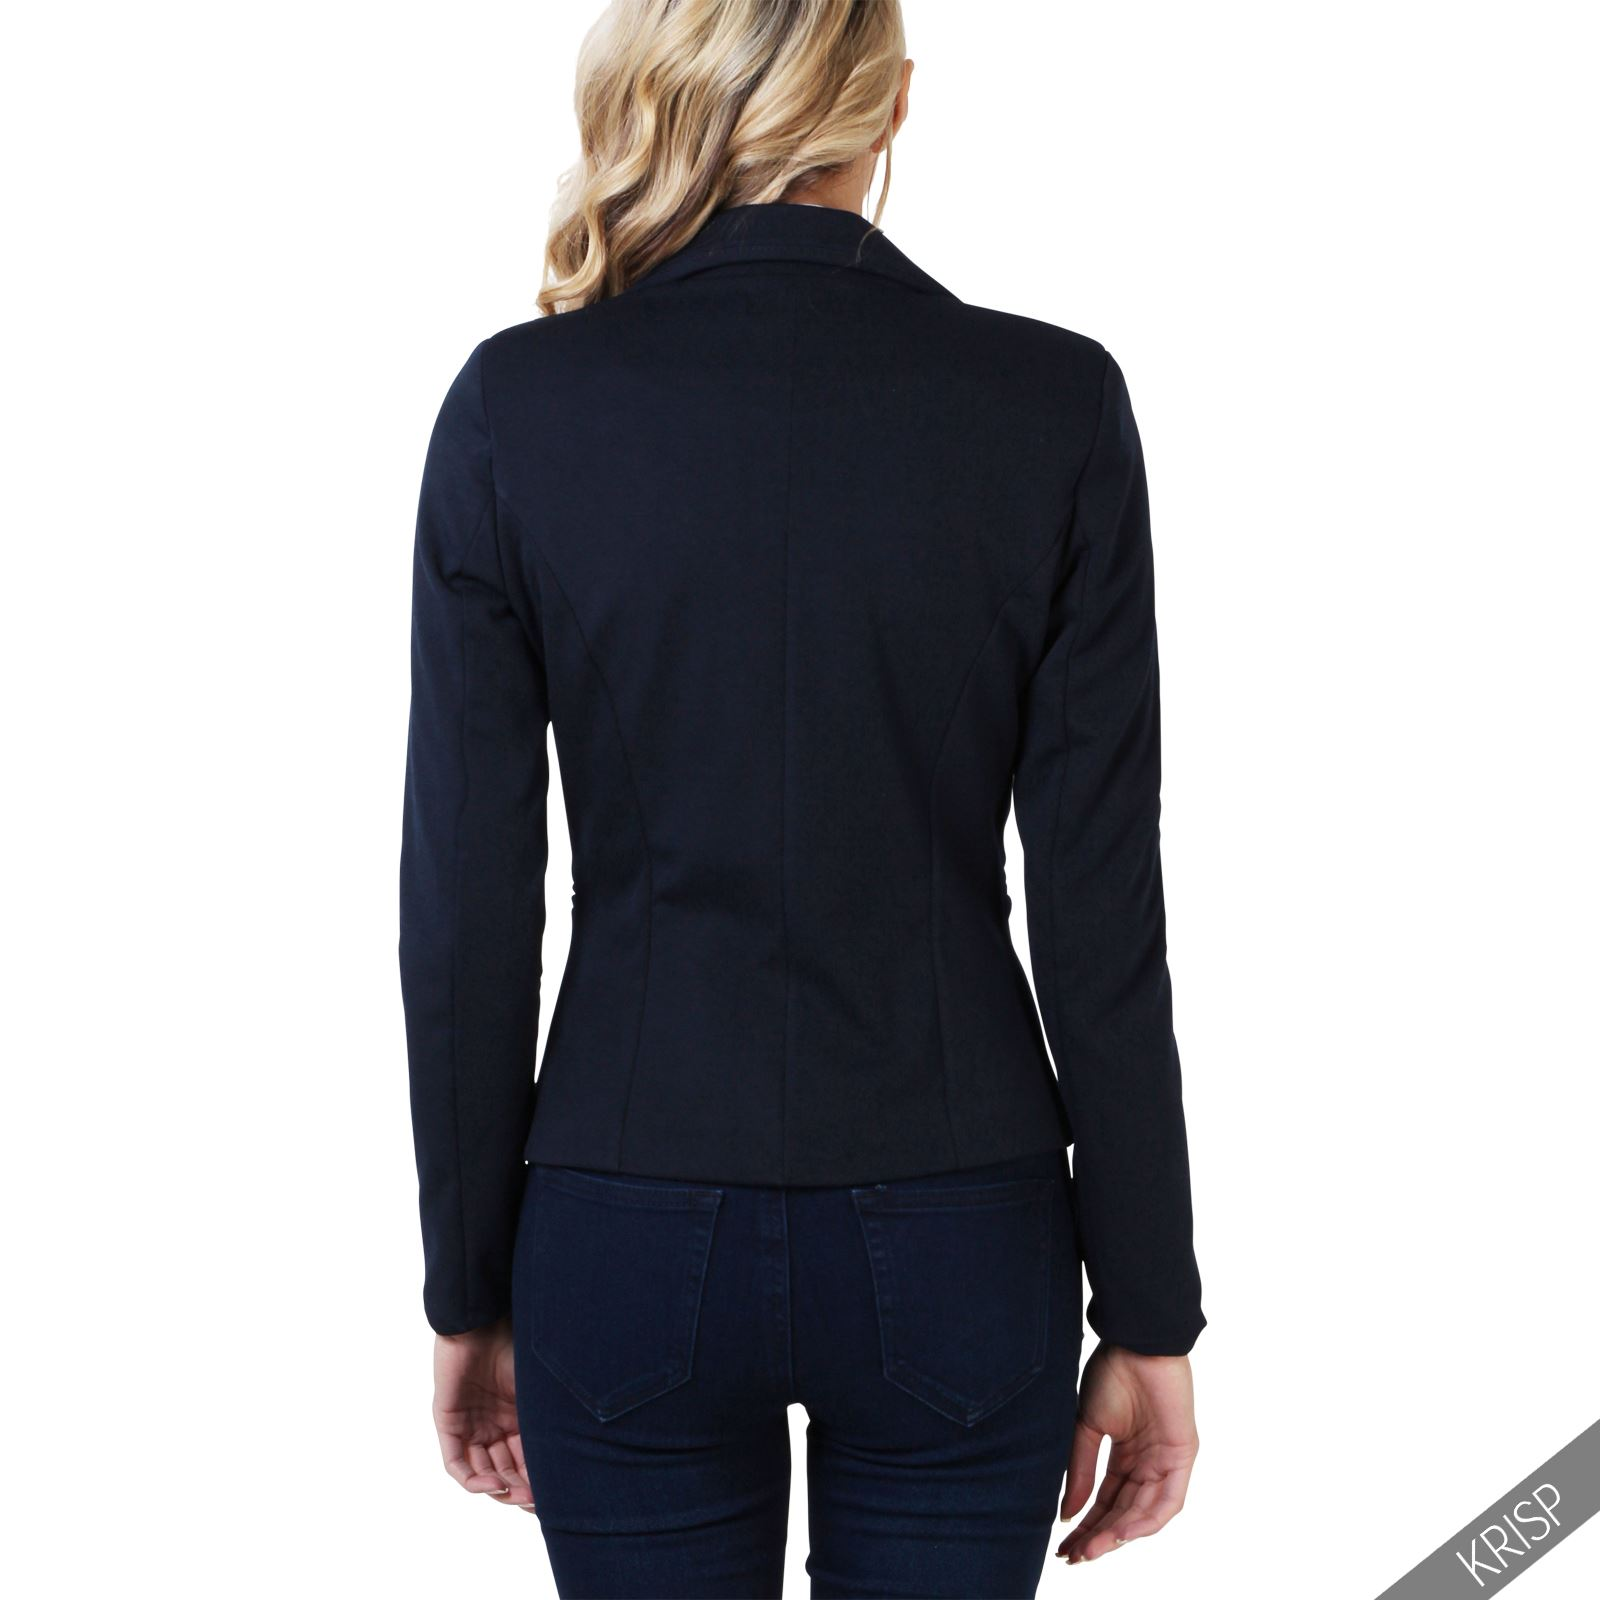 Explore Hobbs' collection of women's clothing online. The range features chic casual wear, crisp suiting, & lux occasion wear to complete your wardrobe.